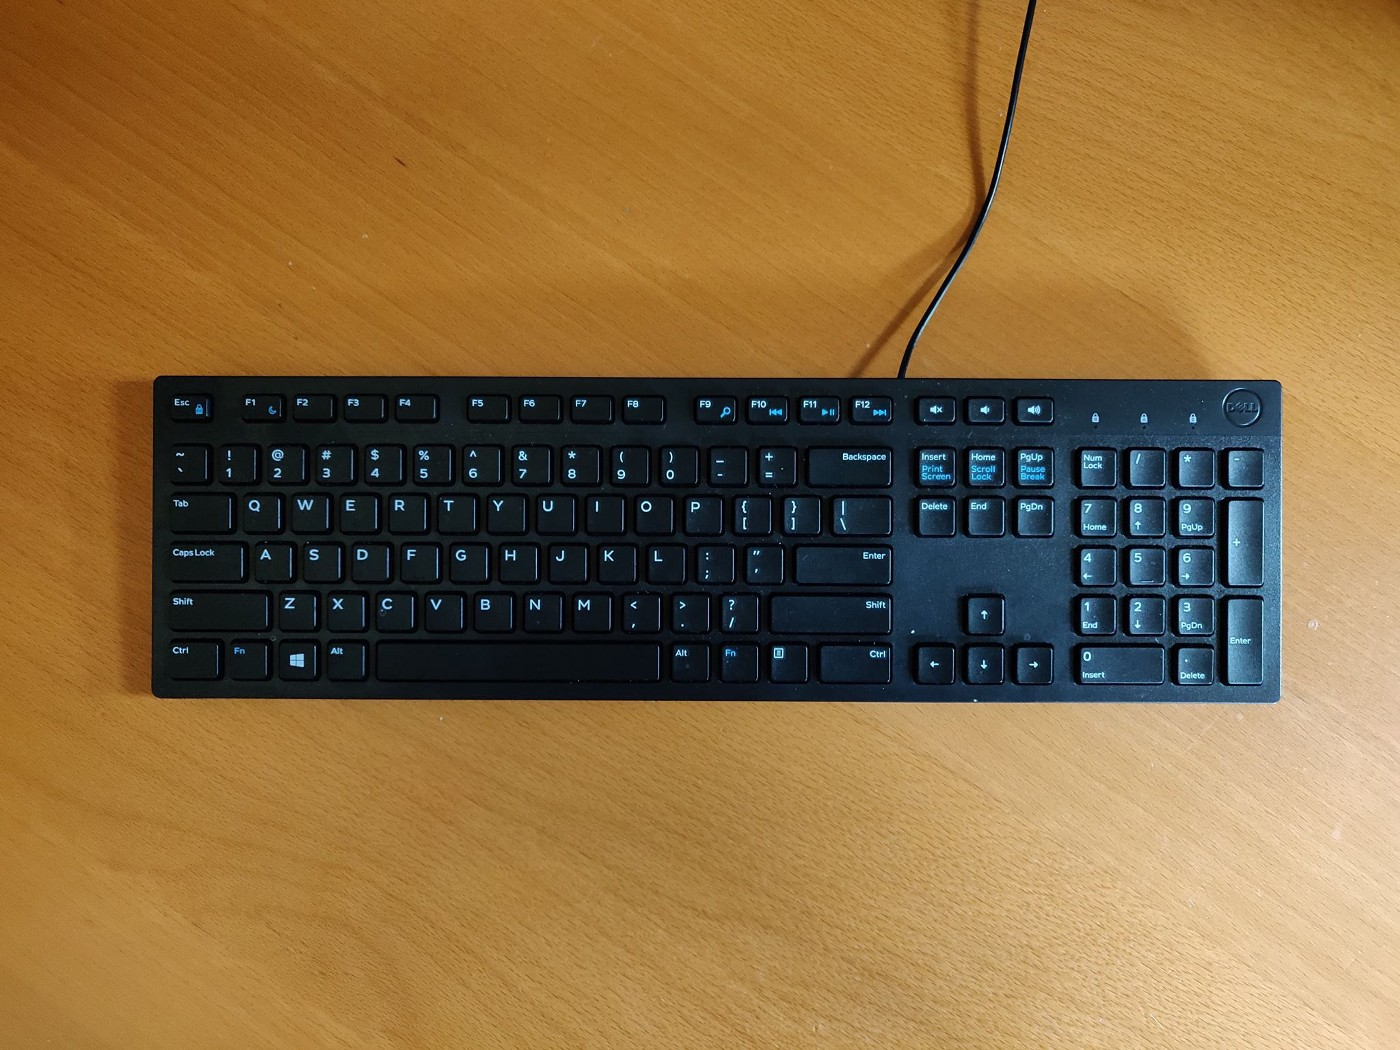 Top down view of a black keyboard with a minimal wooden desk.